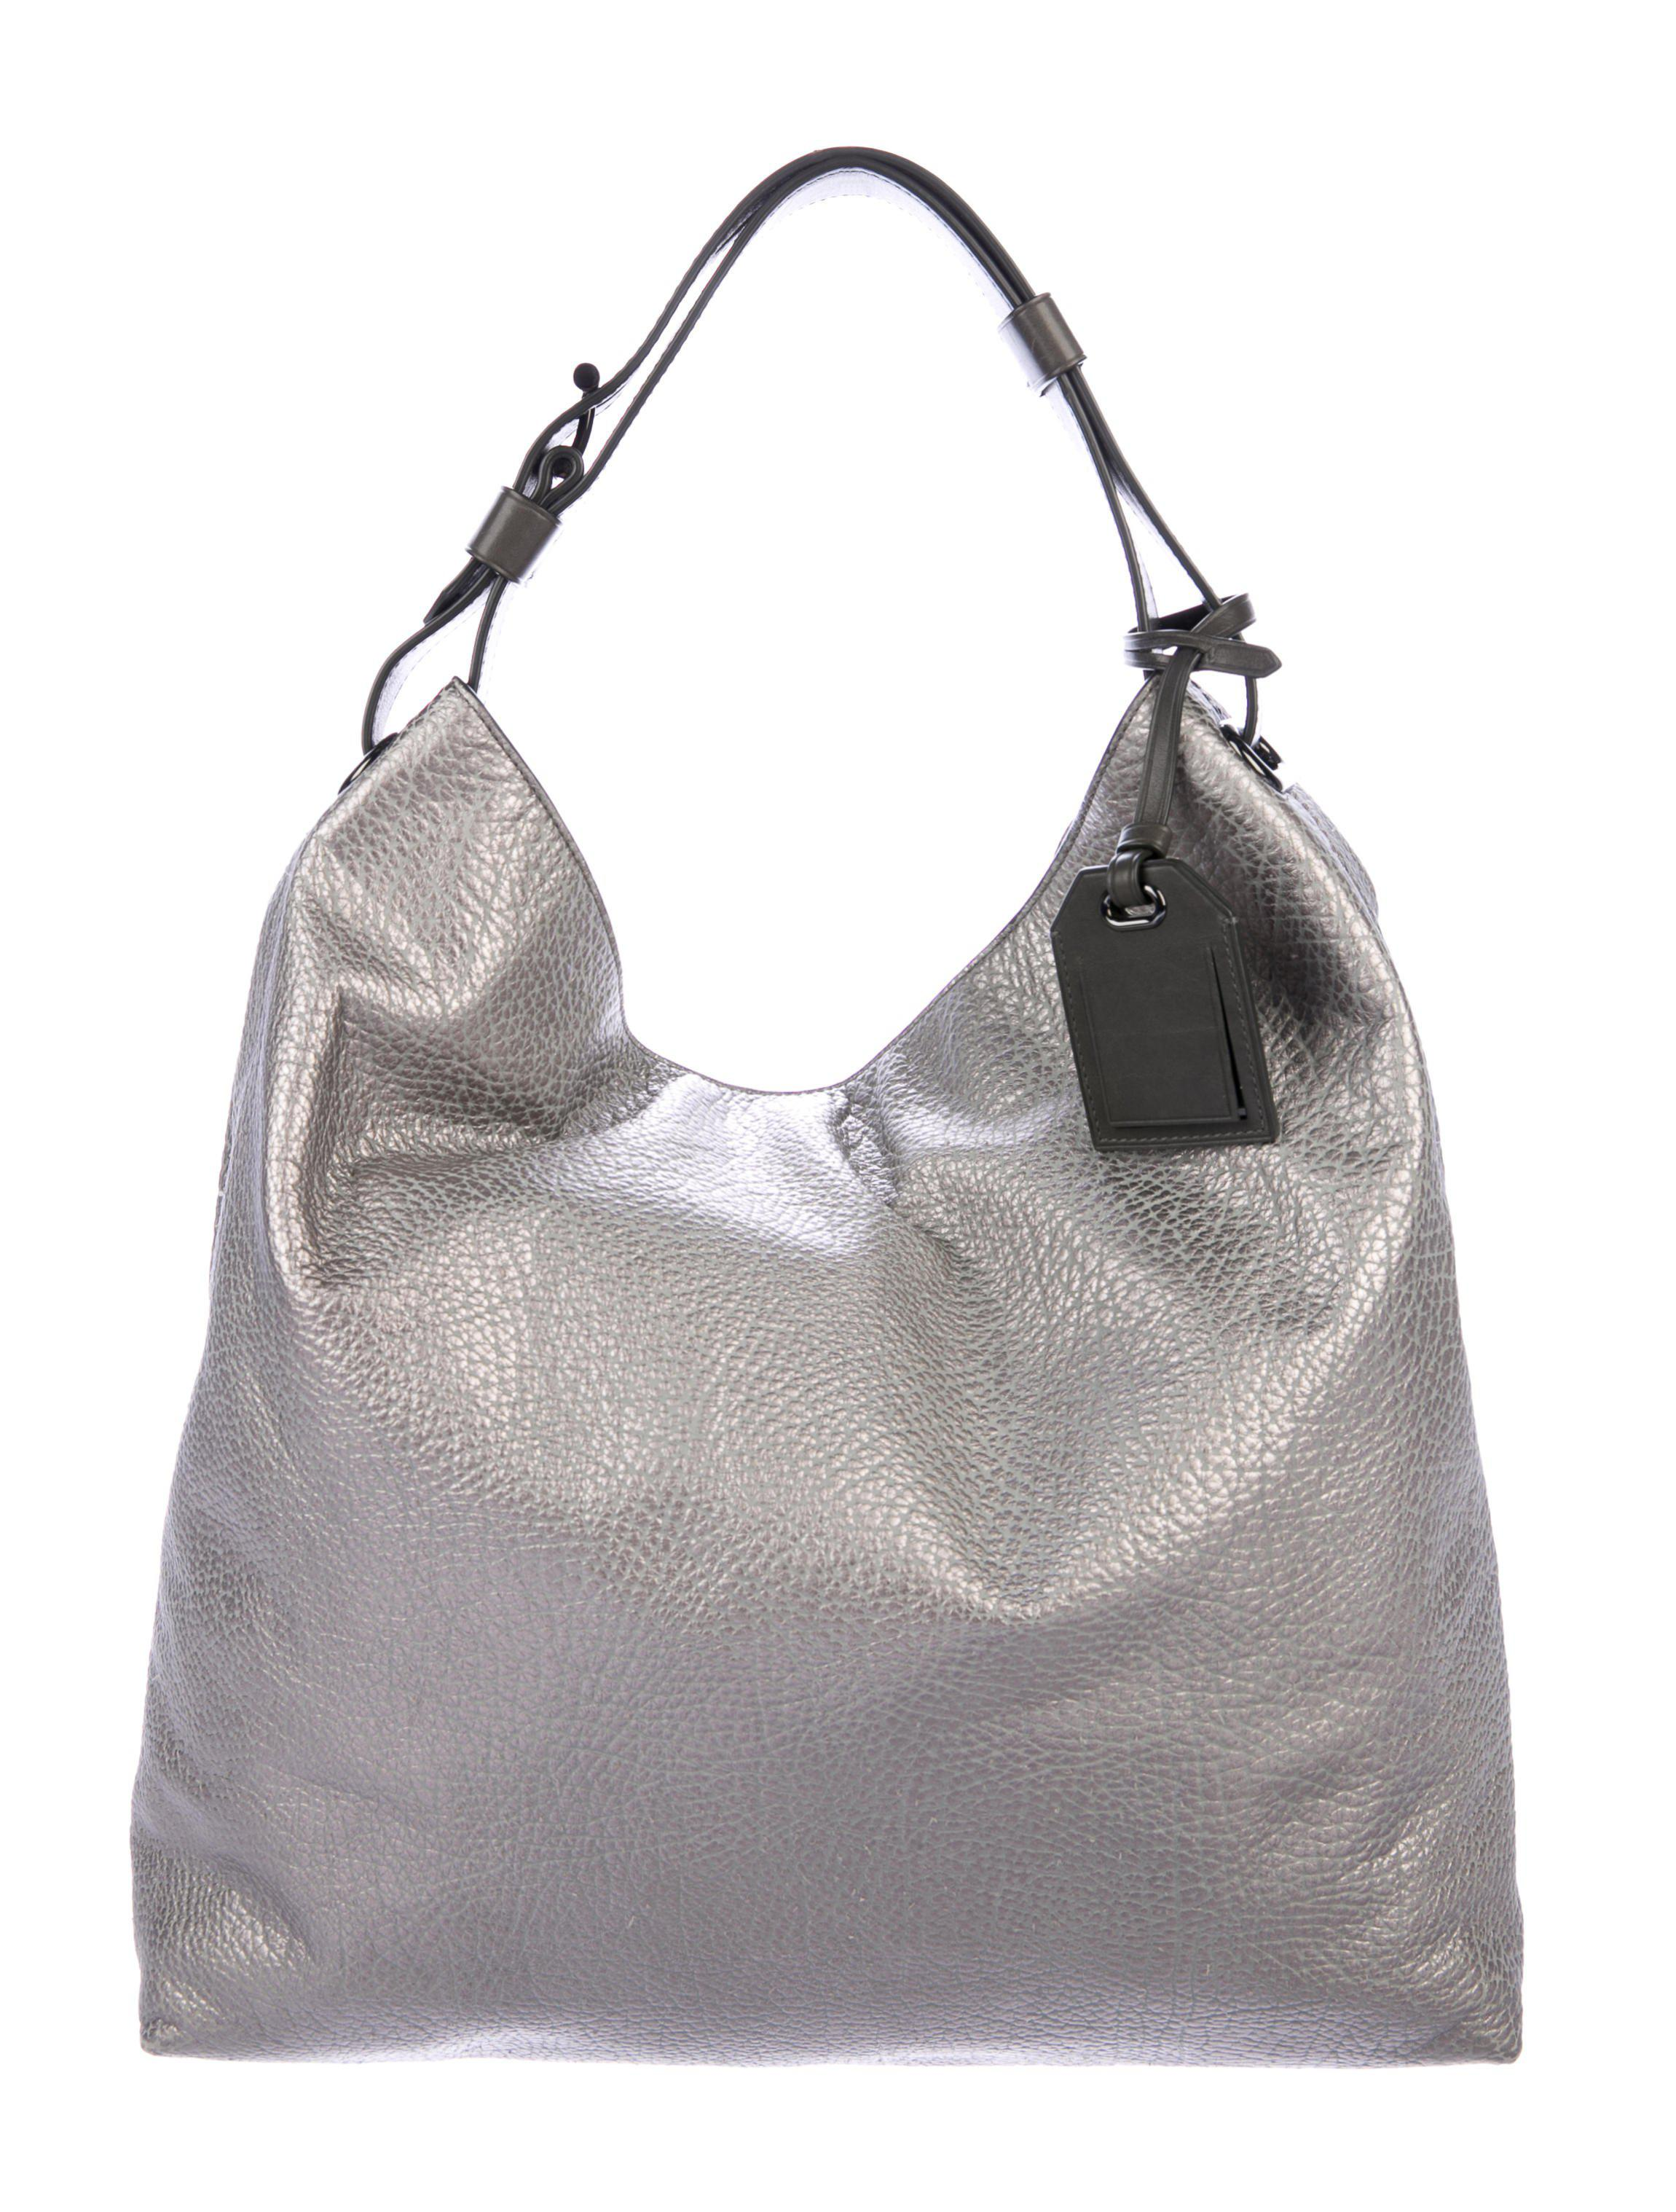 b9da212e0c09 Lyst - Reed Krakoff Grain Leather Hobo in Metallic